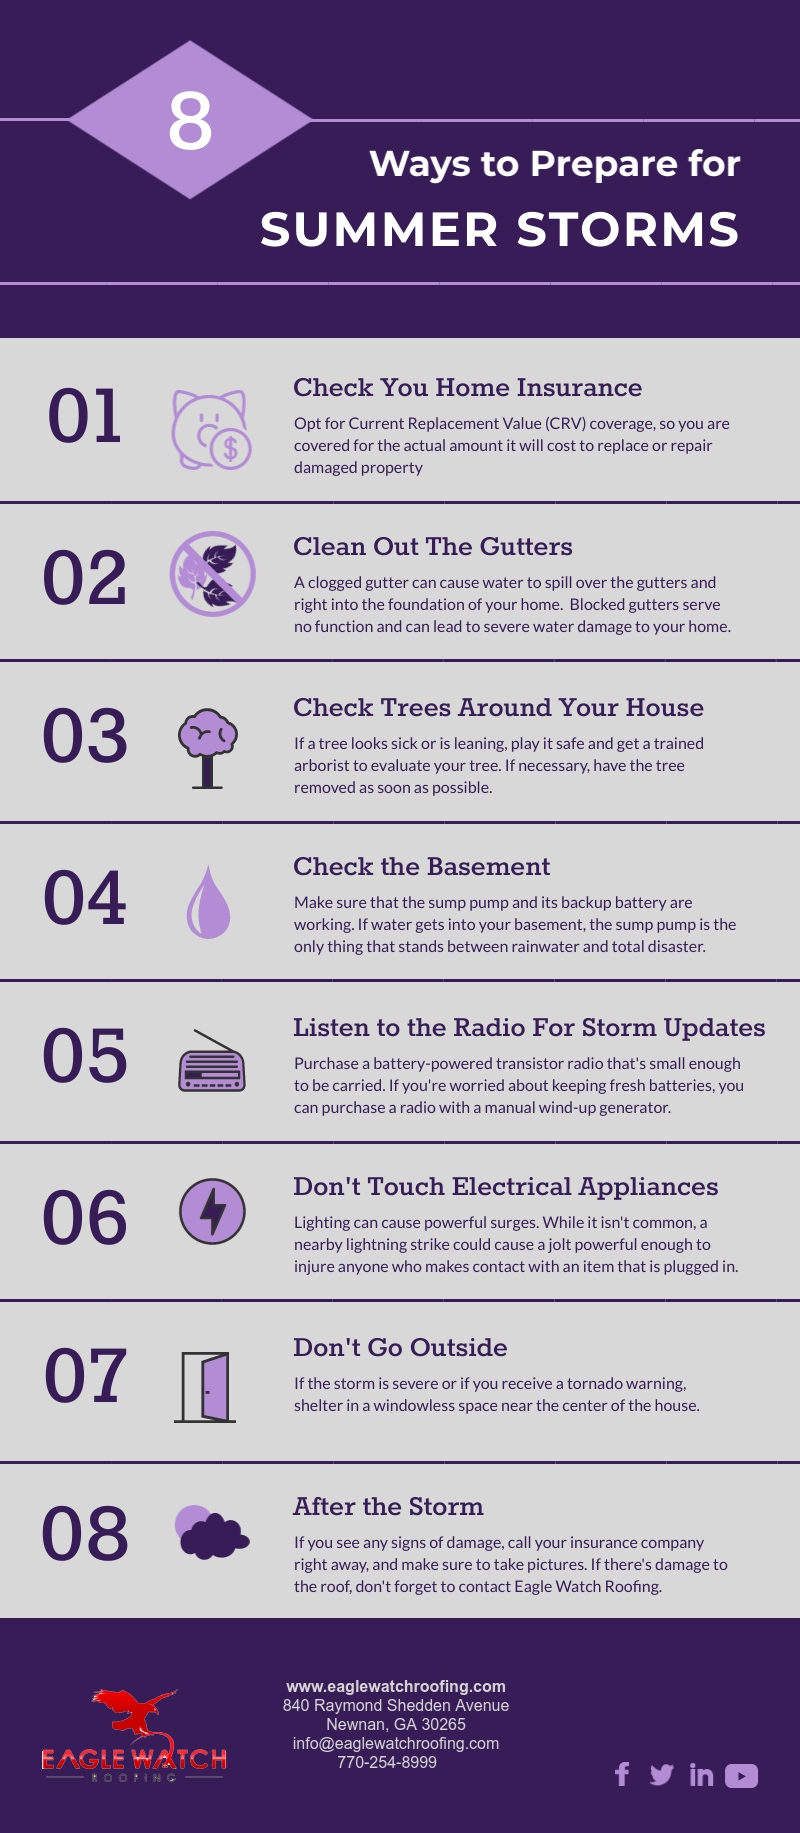 Get Ready for Summer Storms [infographic]